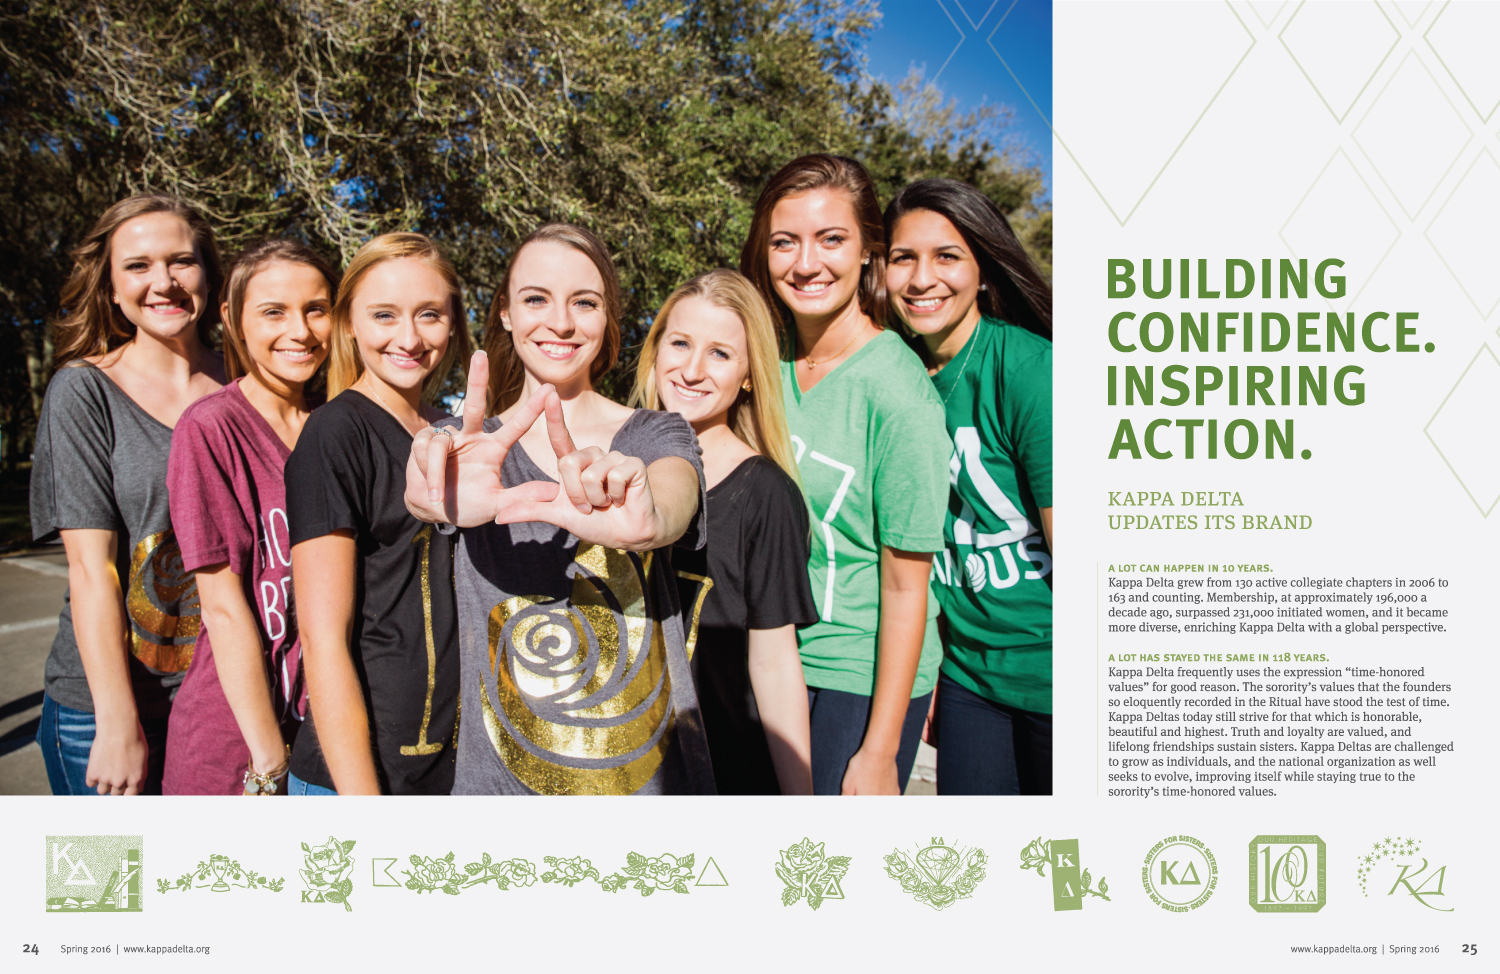 spring-2016-angelos-kappa-delta-sorority-magazine-launch-new-brand-logo-tagline-building-confidence-inspiring-action